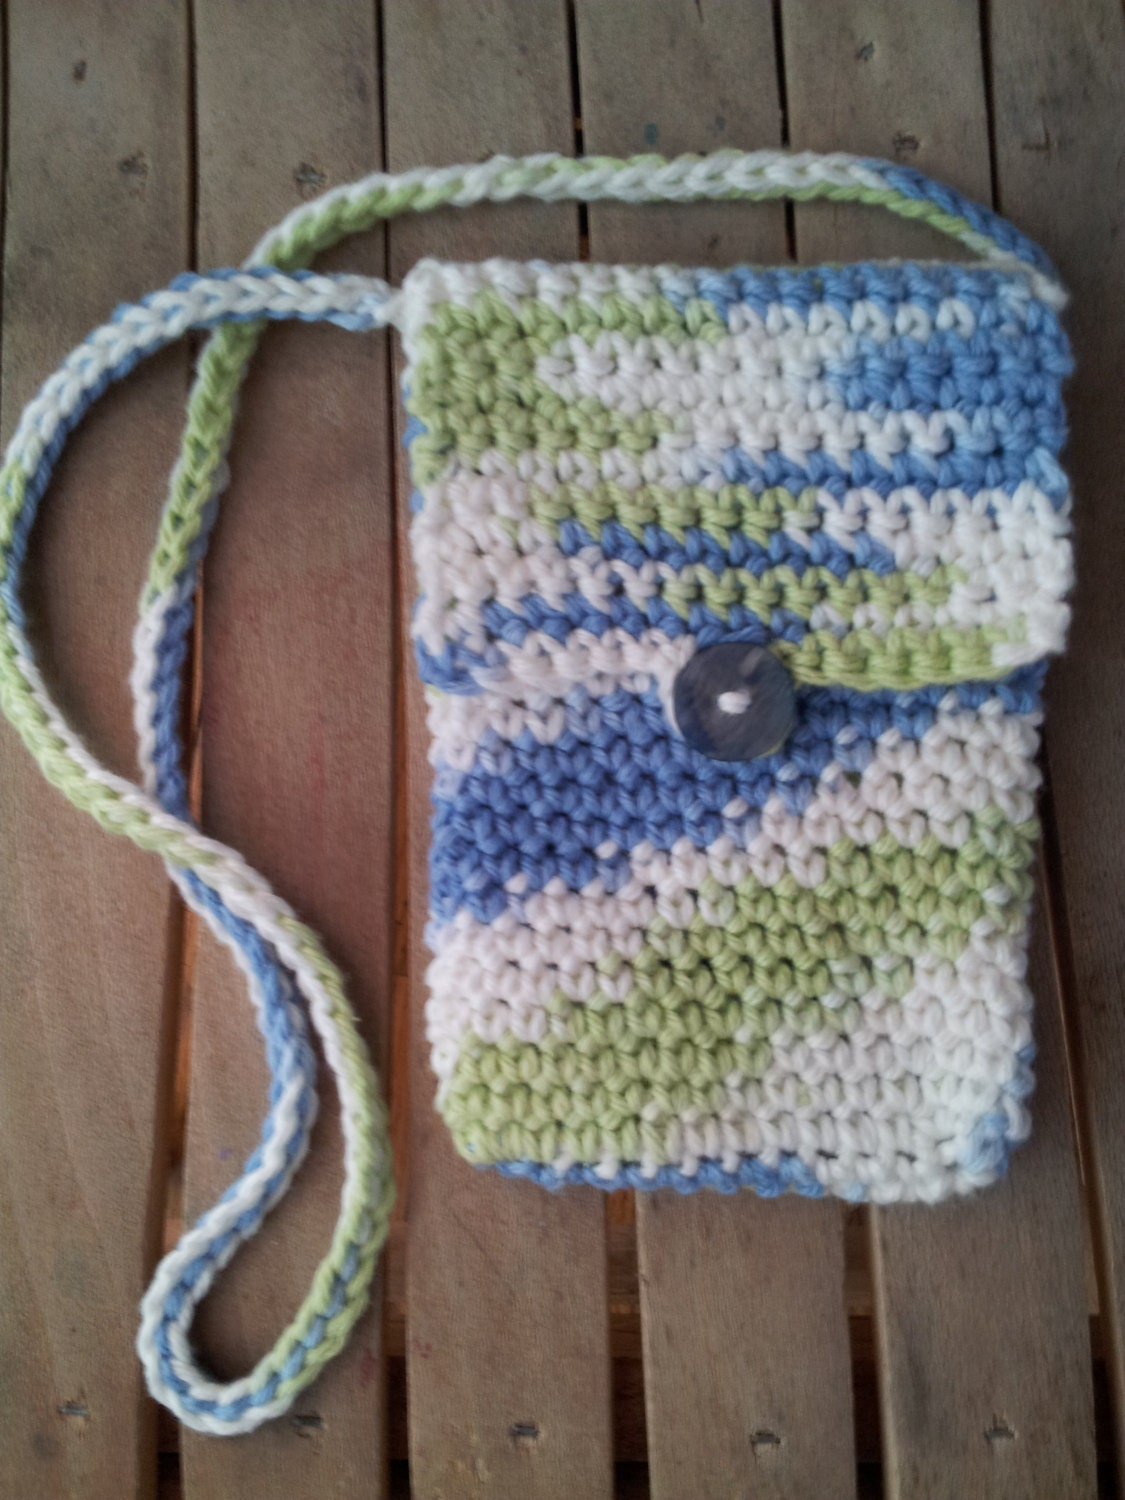 MOBILE PHONE BAG. Small Bag. Click Here for Image. This pattern is meant to join new millenium technology with that '70 look that now is very vogue (like crochet is!). The pattern should be adapted to the size of your phone, but it is very easy and, I hope, good looking.